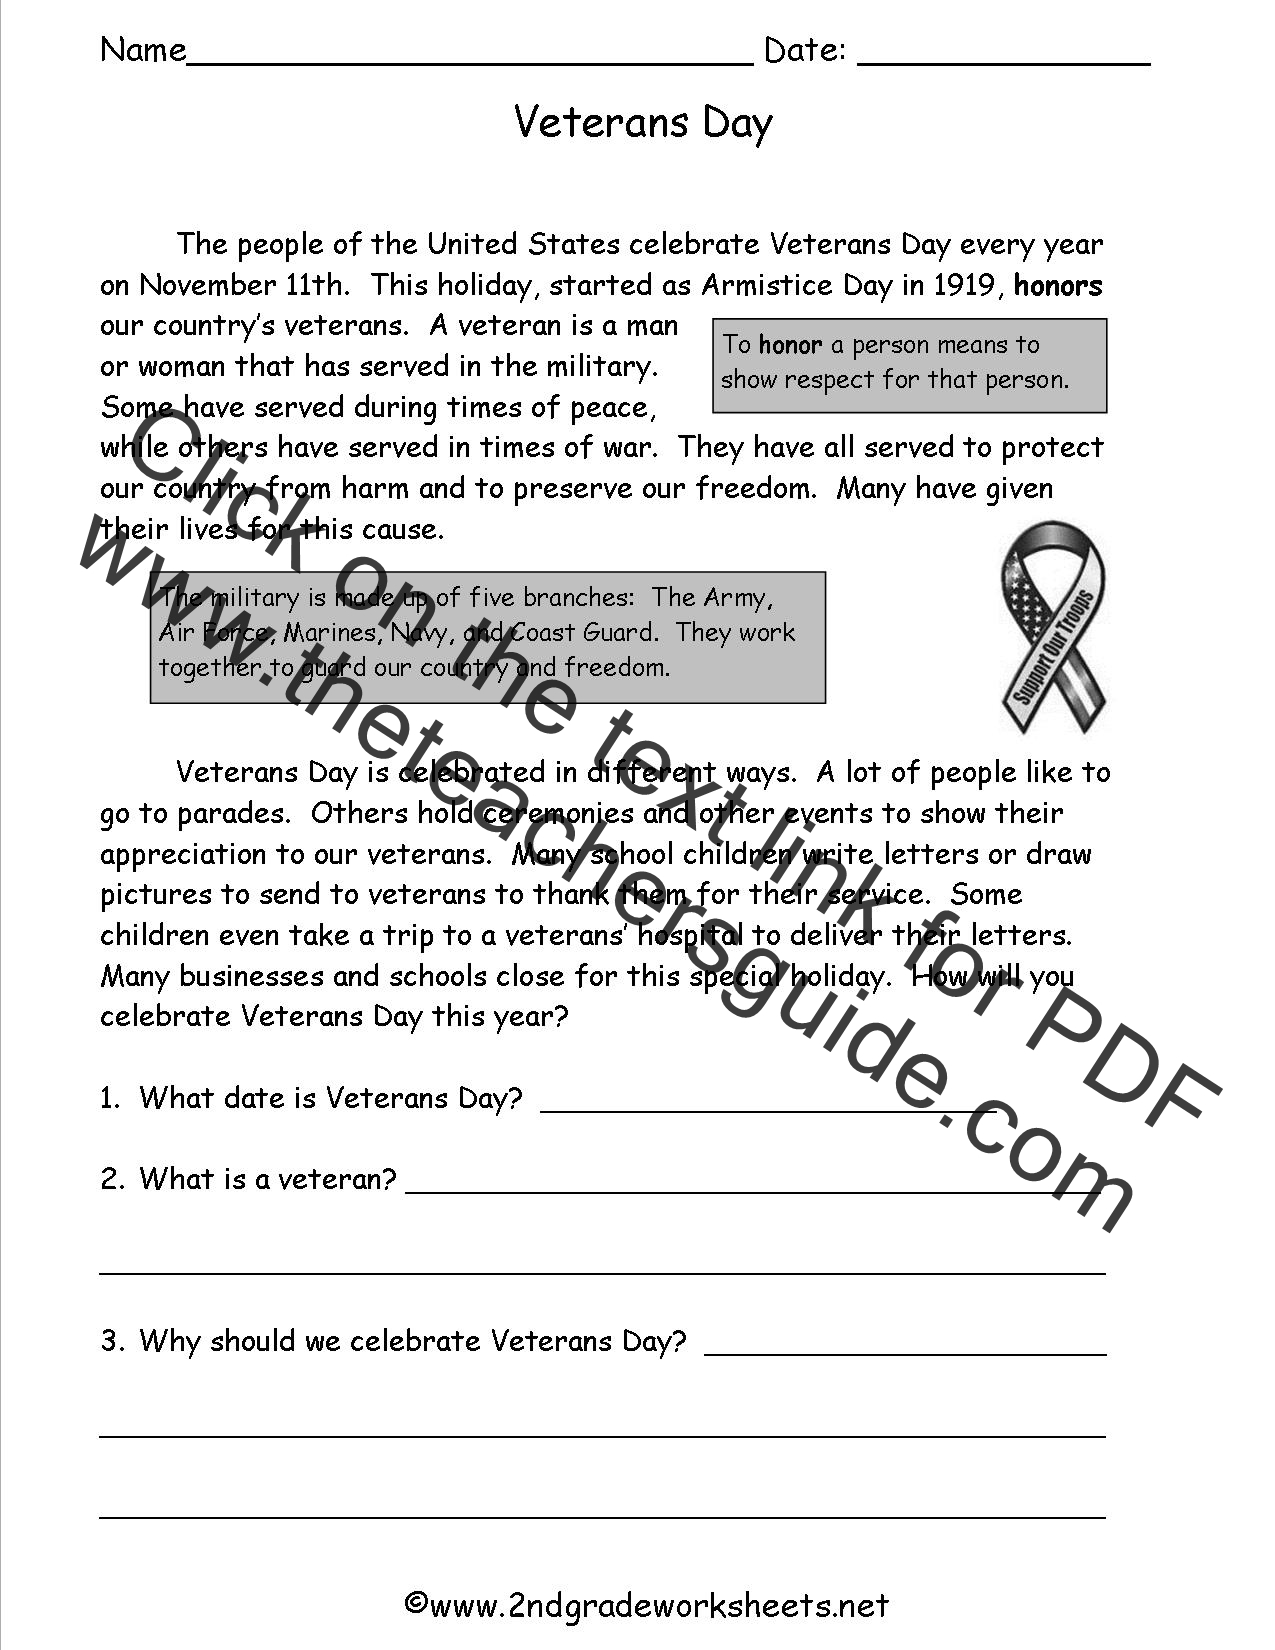 worksheet Free Comprehension Worksheets For Grade 3 veterans day worksheets comprehension story